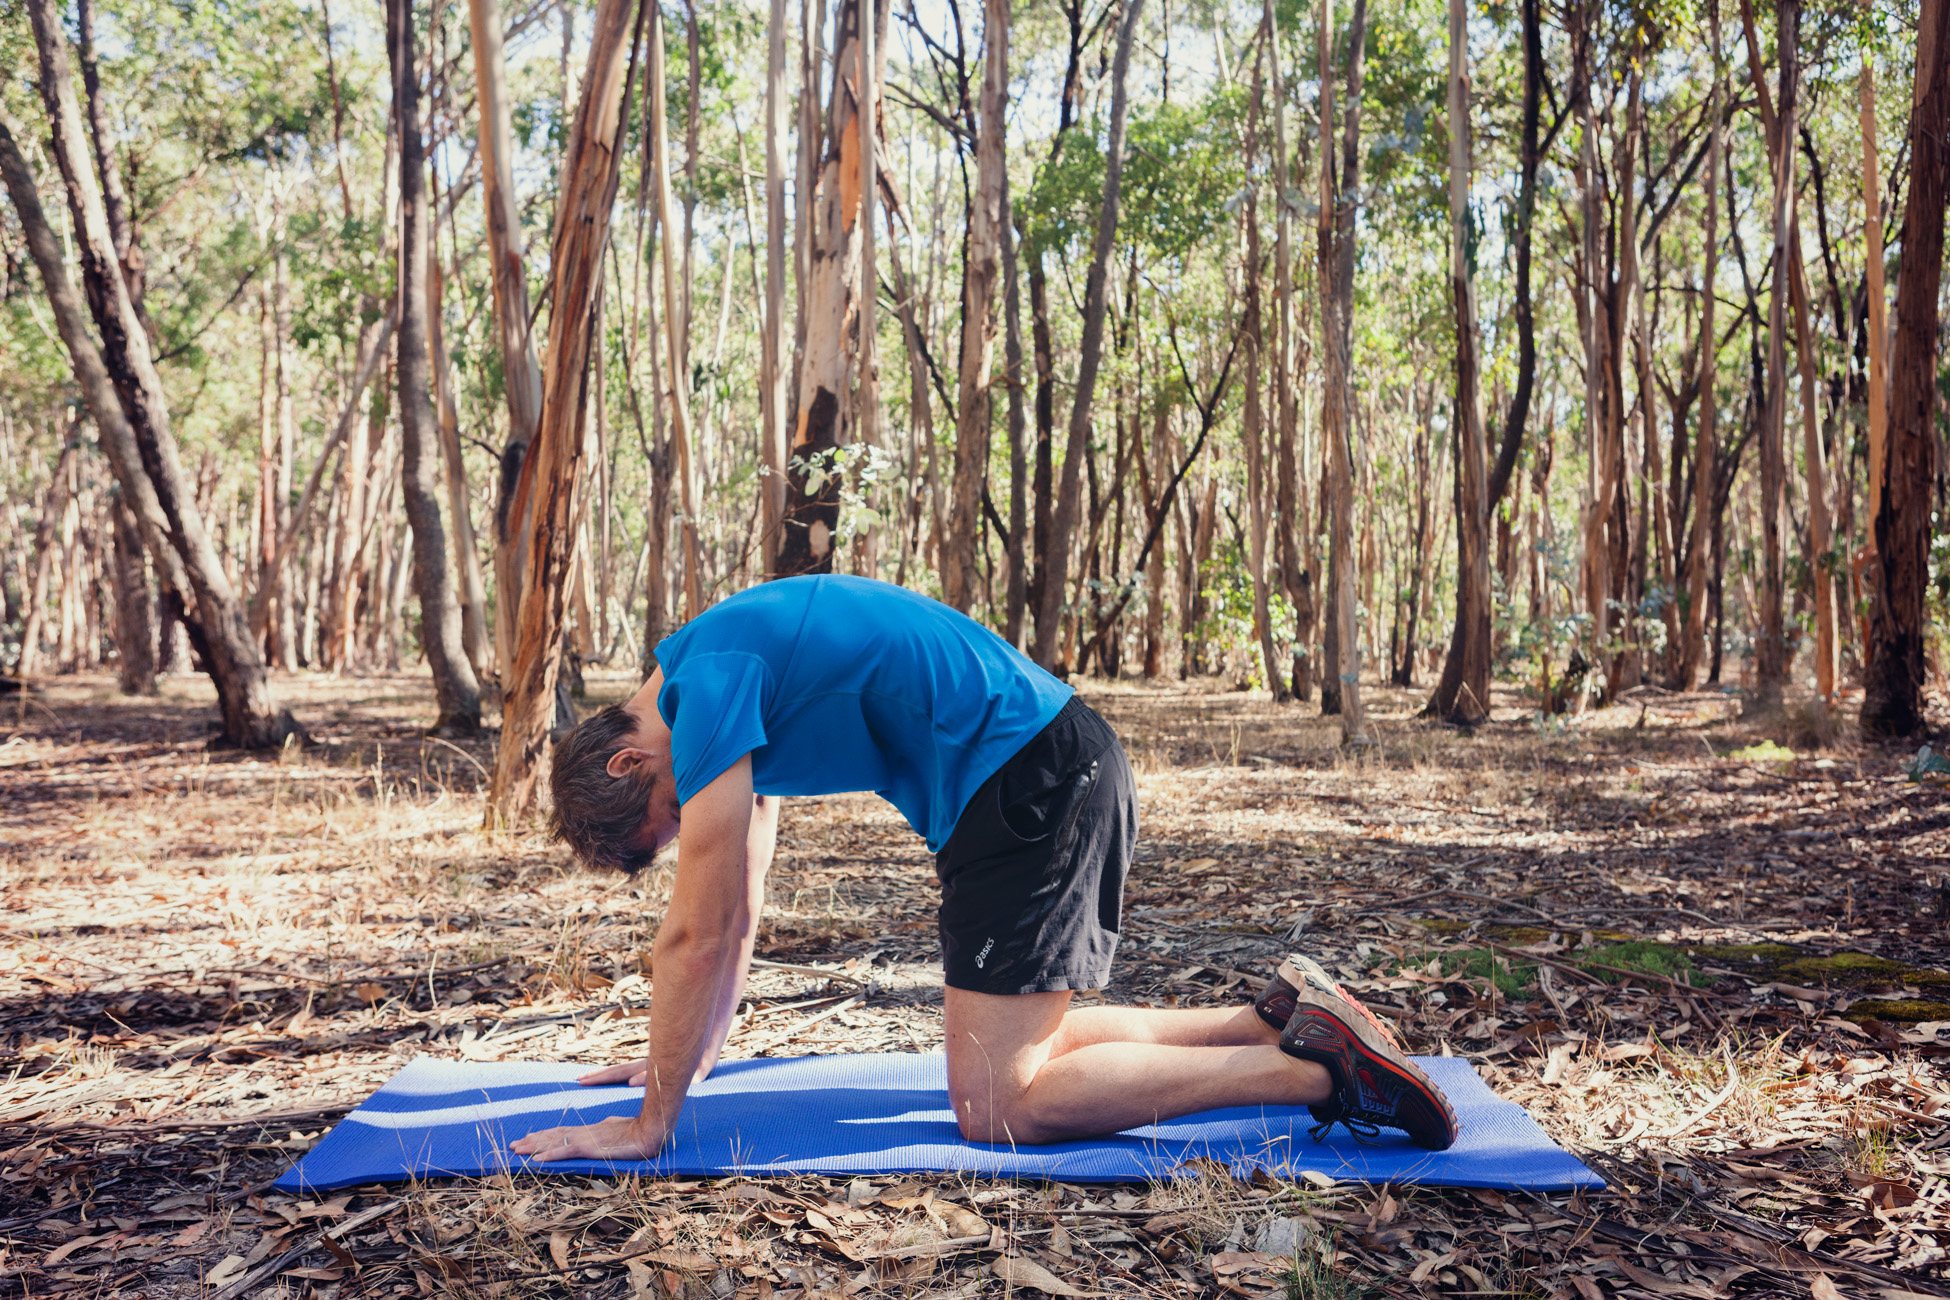 Next, arch your upper back by tucking your head and tail bone in and pulling your belly button in towards your spine, making a curve through your back. Exhale completely as you activate your deep core stabilisers. Repeat x 10 times